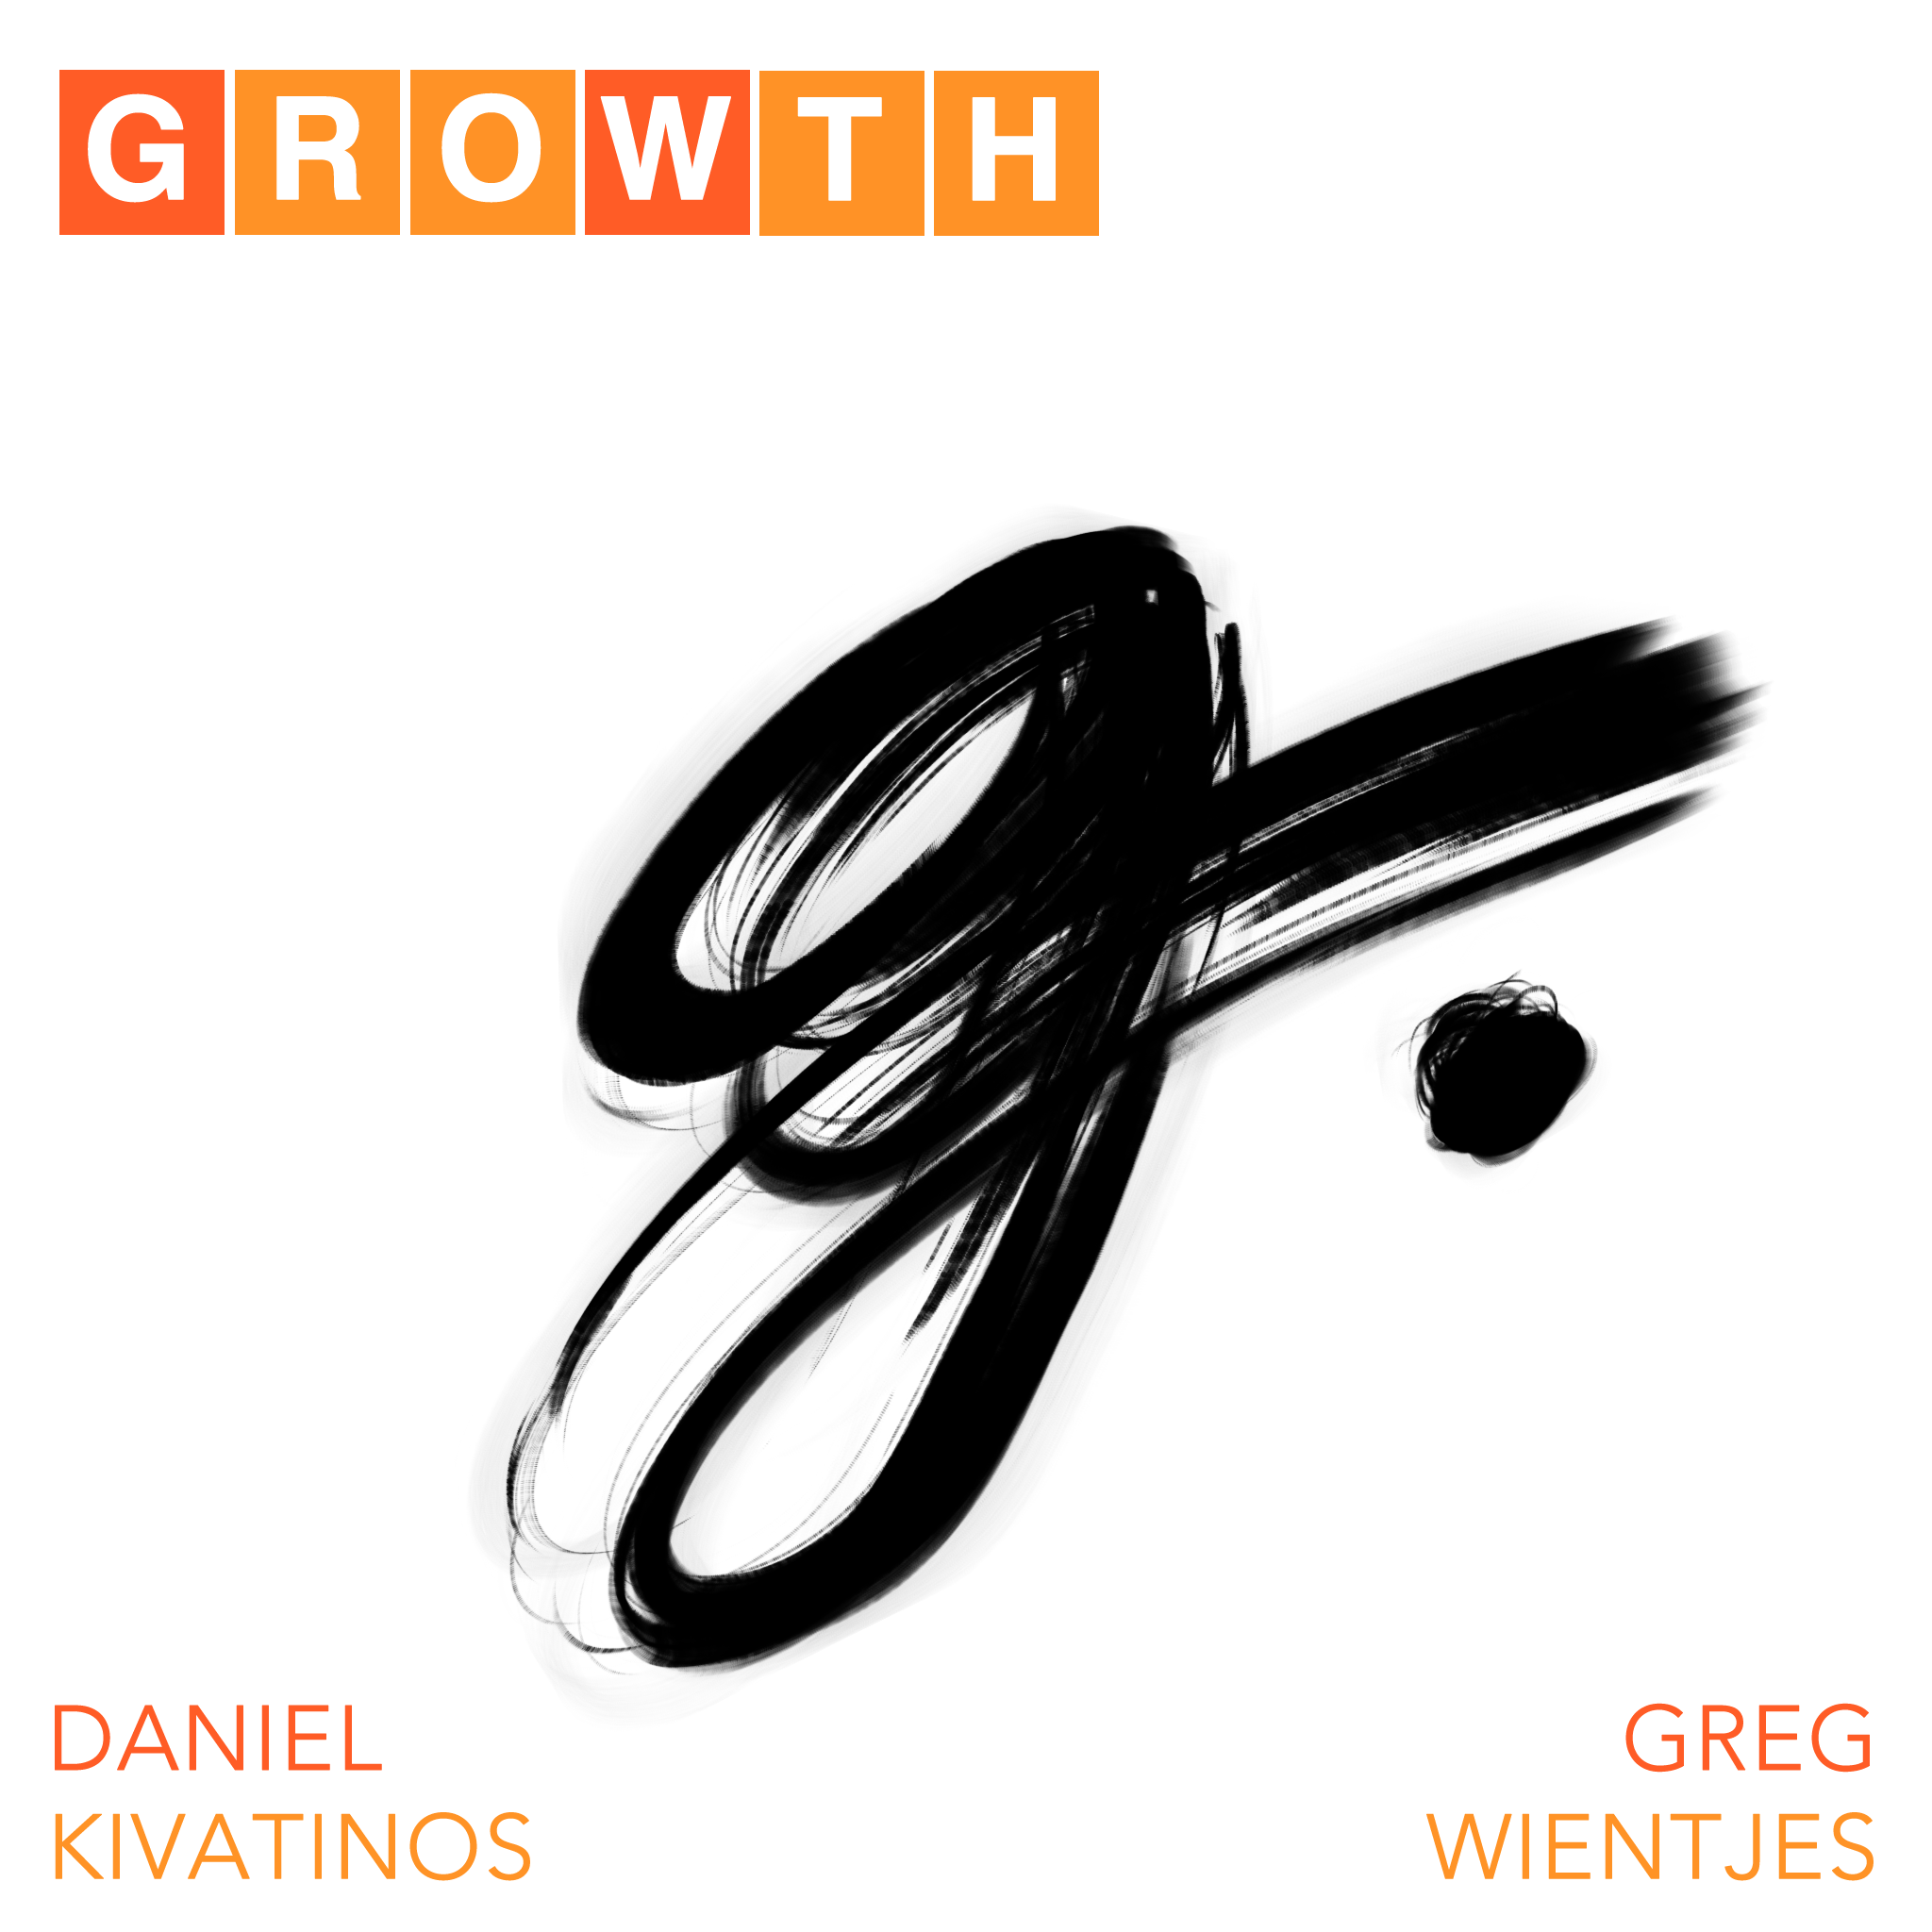 ongrowth - all things that inspire. show art